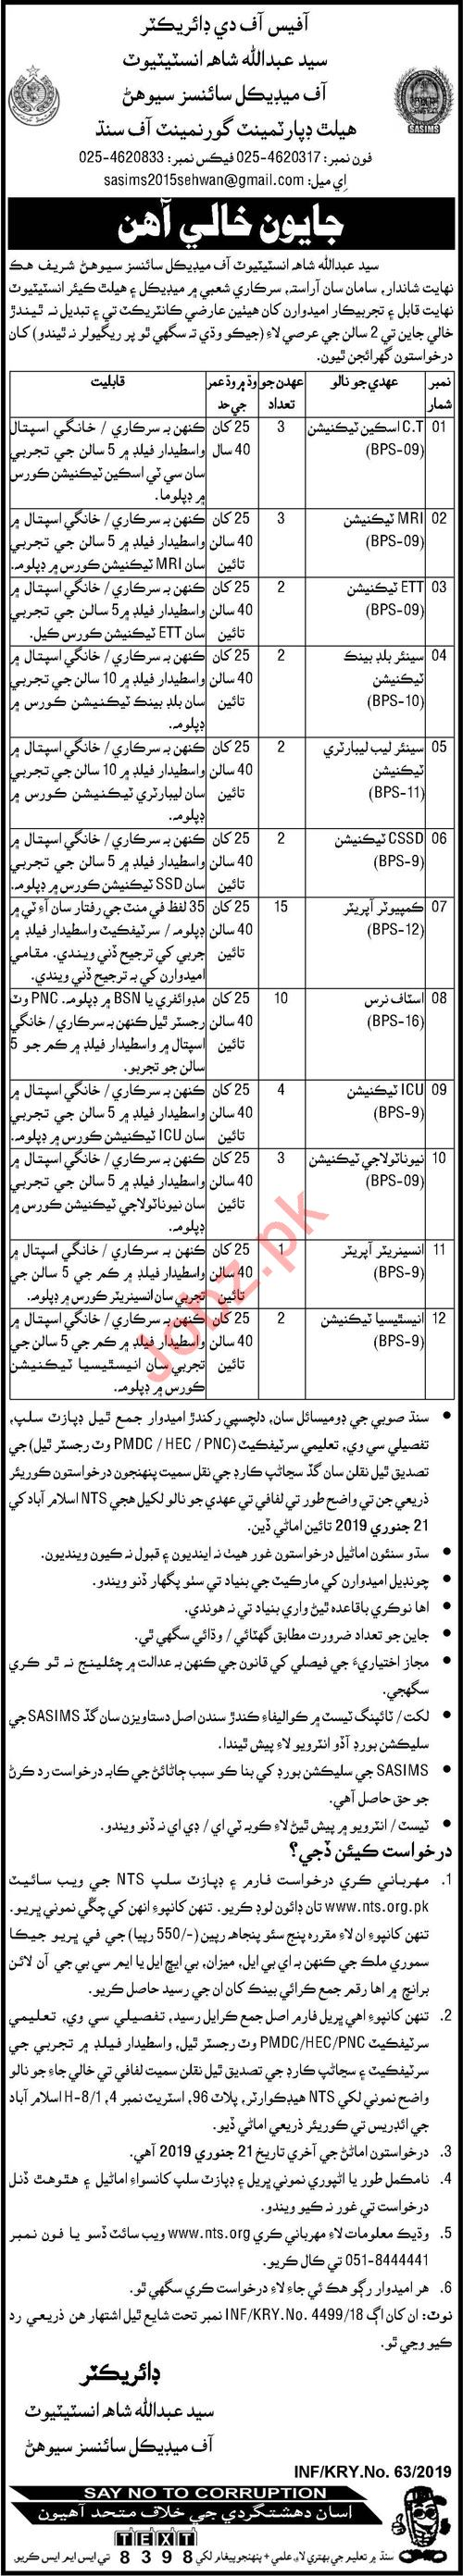 Syed Abdullah Shah Institute of Medical Sciences Jobs 2019